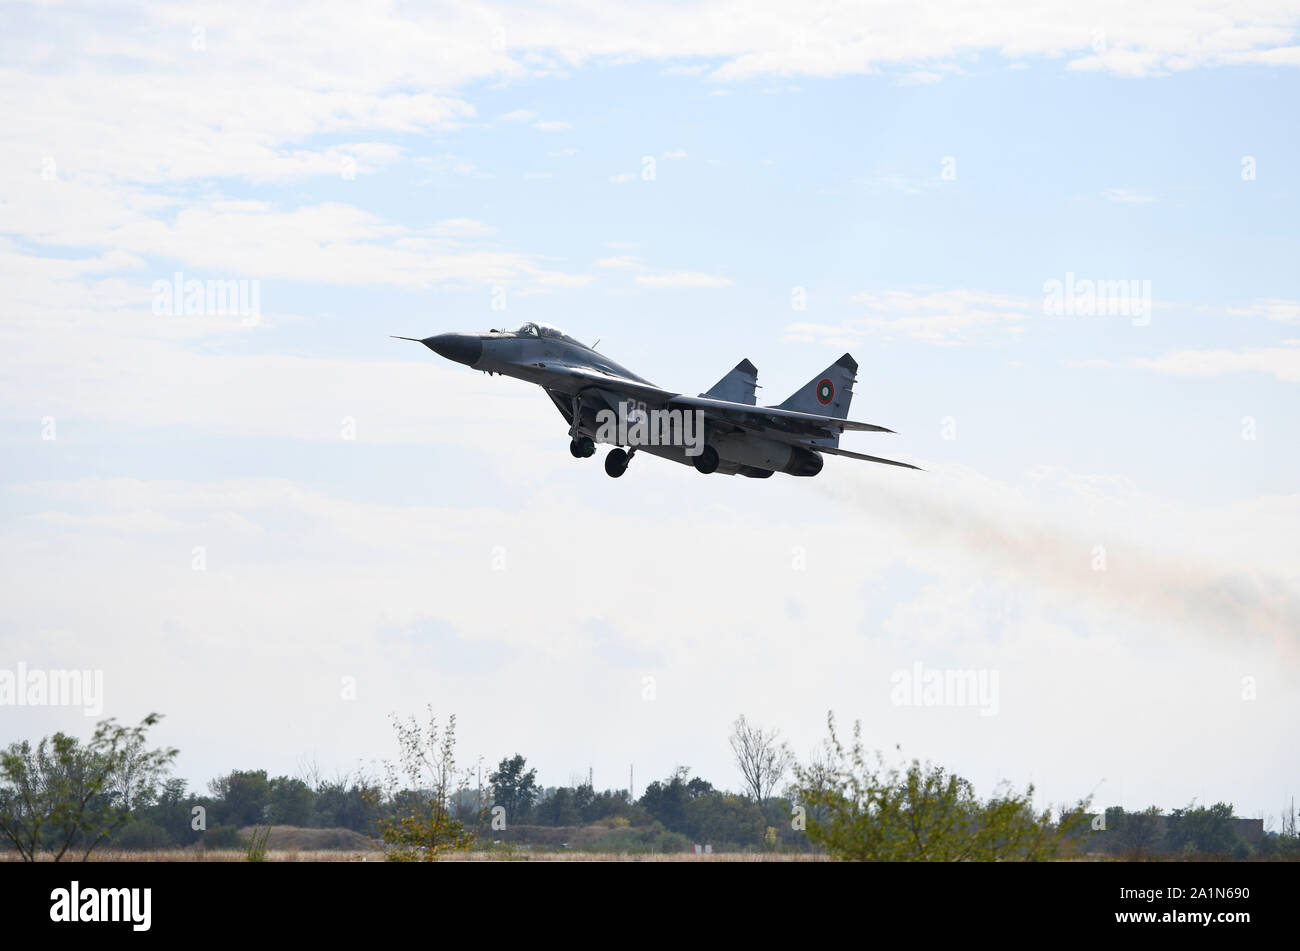 A Bulgarian Air Force MiG-29 takes off during exercise Rapid Buzzard Sept. 25, 2019, at Graf Ignatievo Air Base, Bulgaria. The 510th Fighter Squadron conducted air-to-air training with Bulgarian MiG-29s and air-to-surface training with Bulgarian Air Defense assets.  (U.S. Air Force photo by Senior Airman Savannah L. Waters) Stock Photo